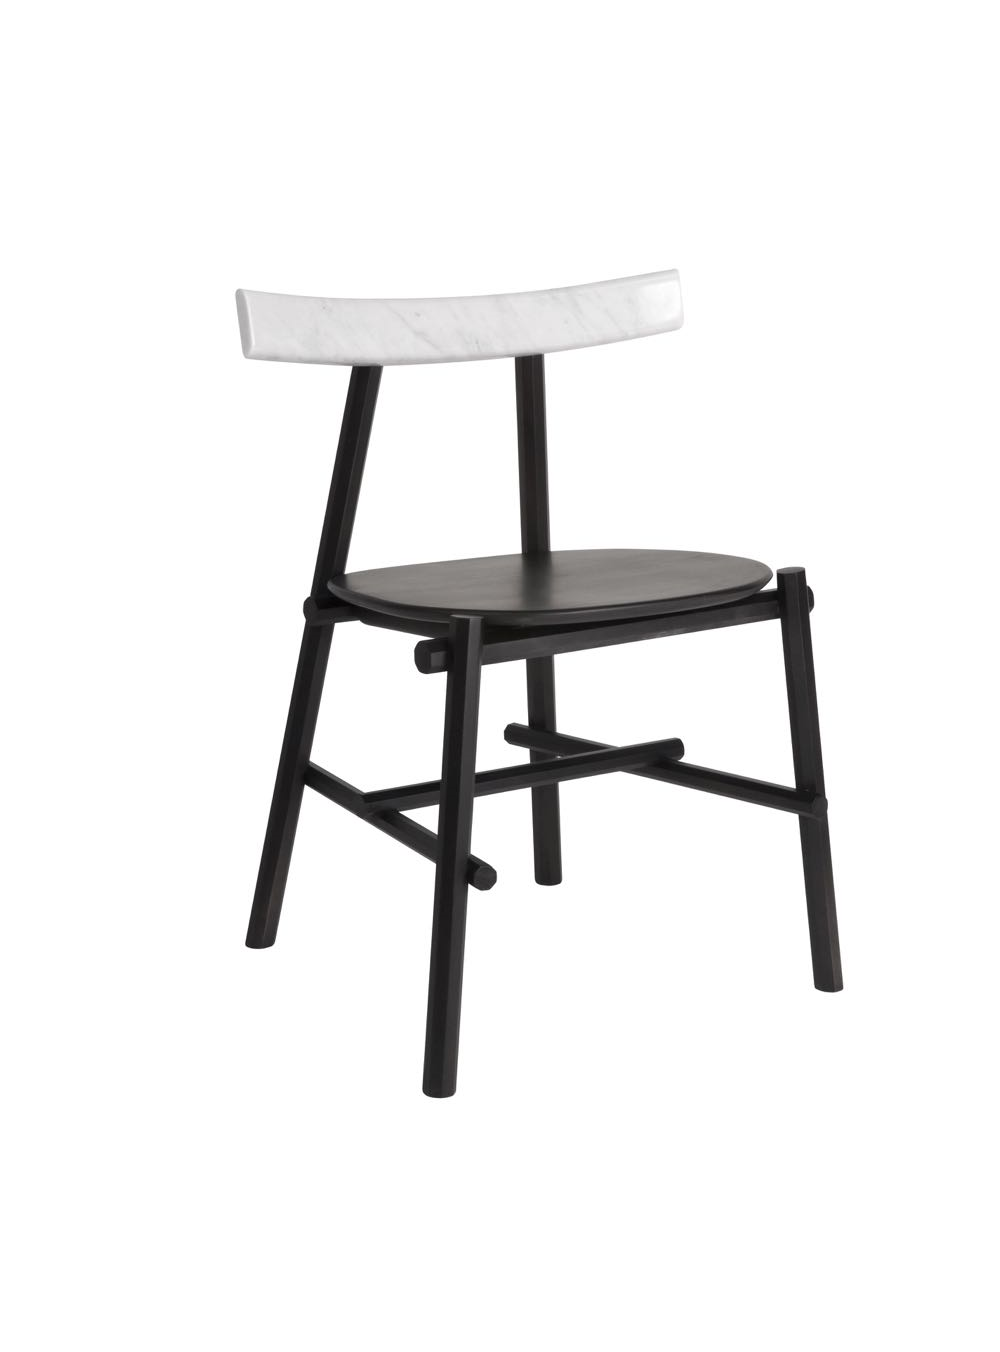 The 'Rōnin' chair can be specified with a shaped marble back rest.